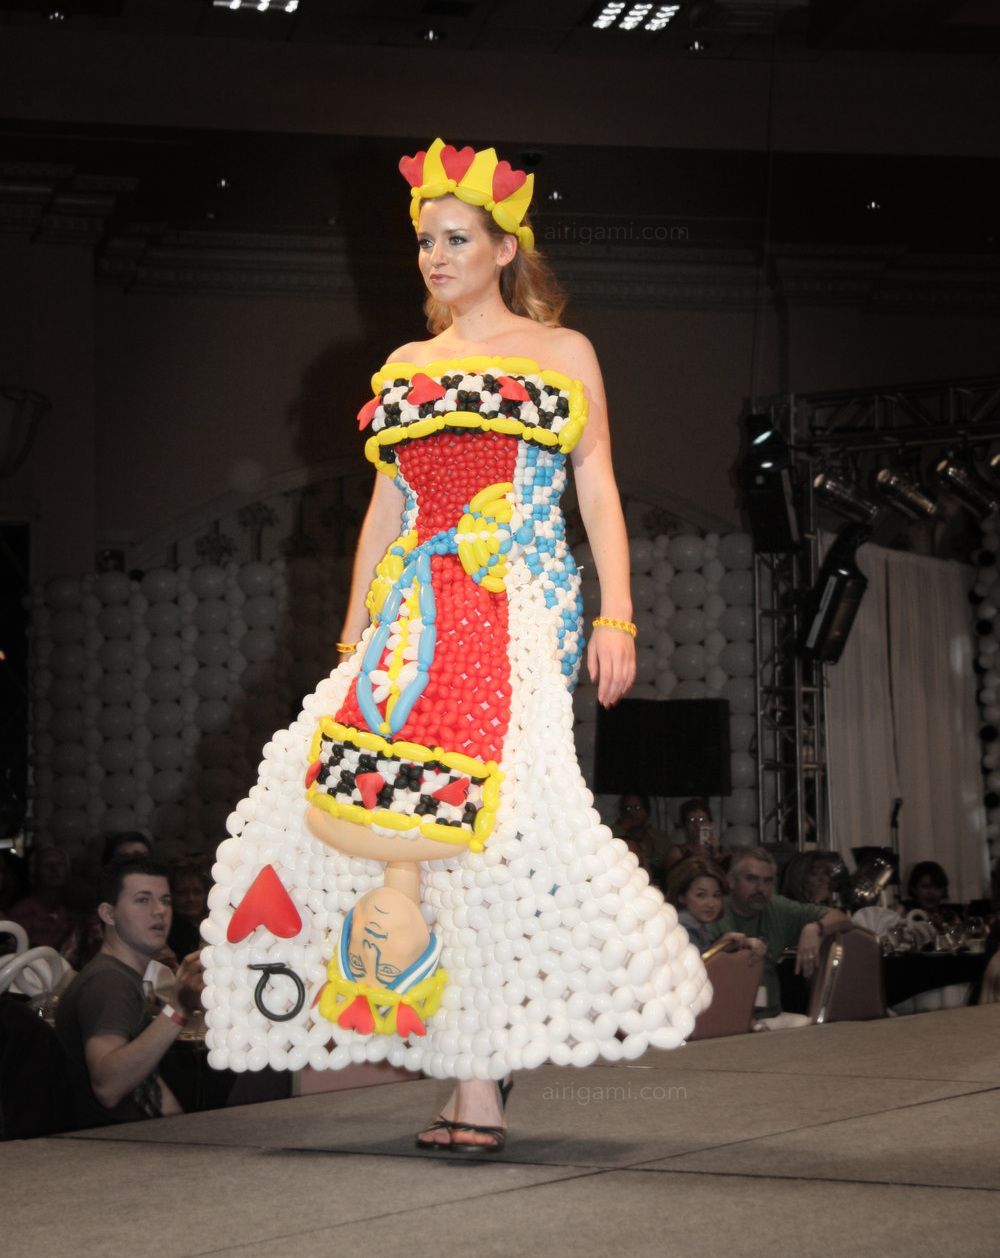 Airigami-balloon-dress-queen.jpg